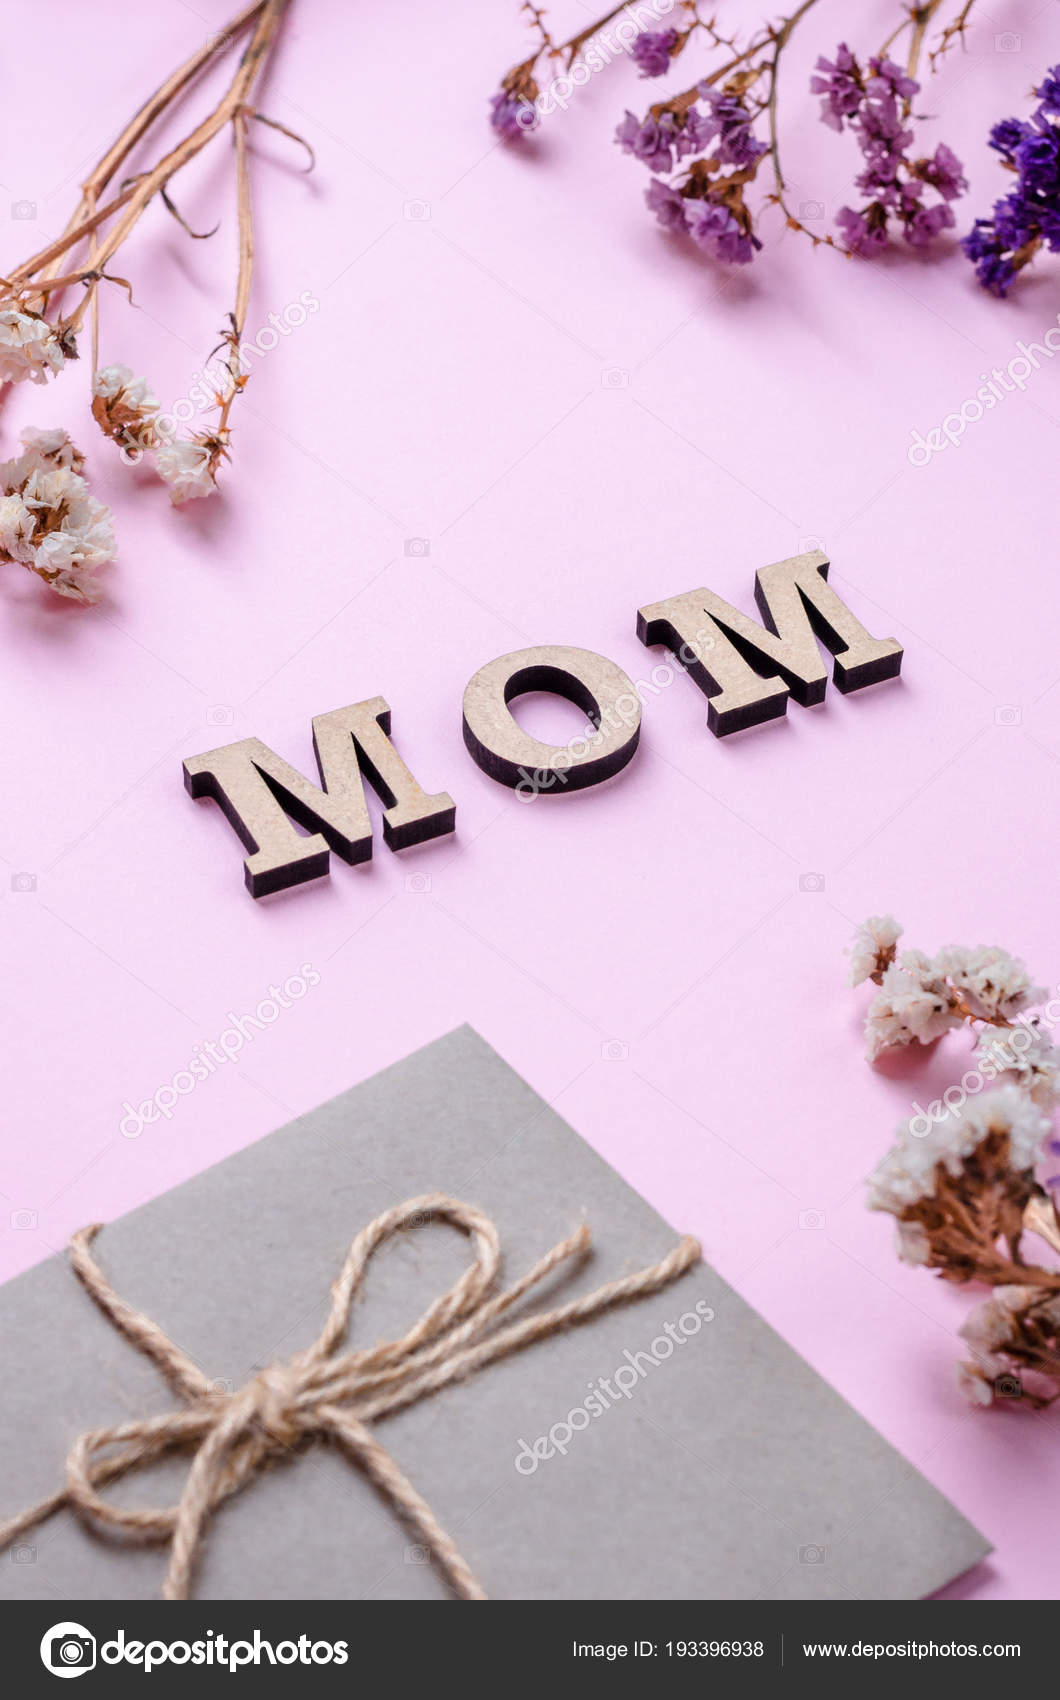 Decorative Letter Mother Day Mom Letter Envelopes Message Present